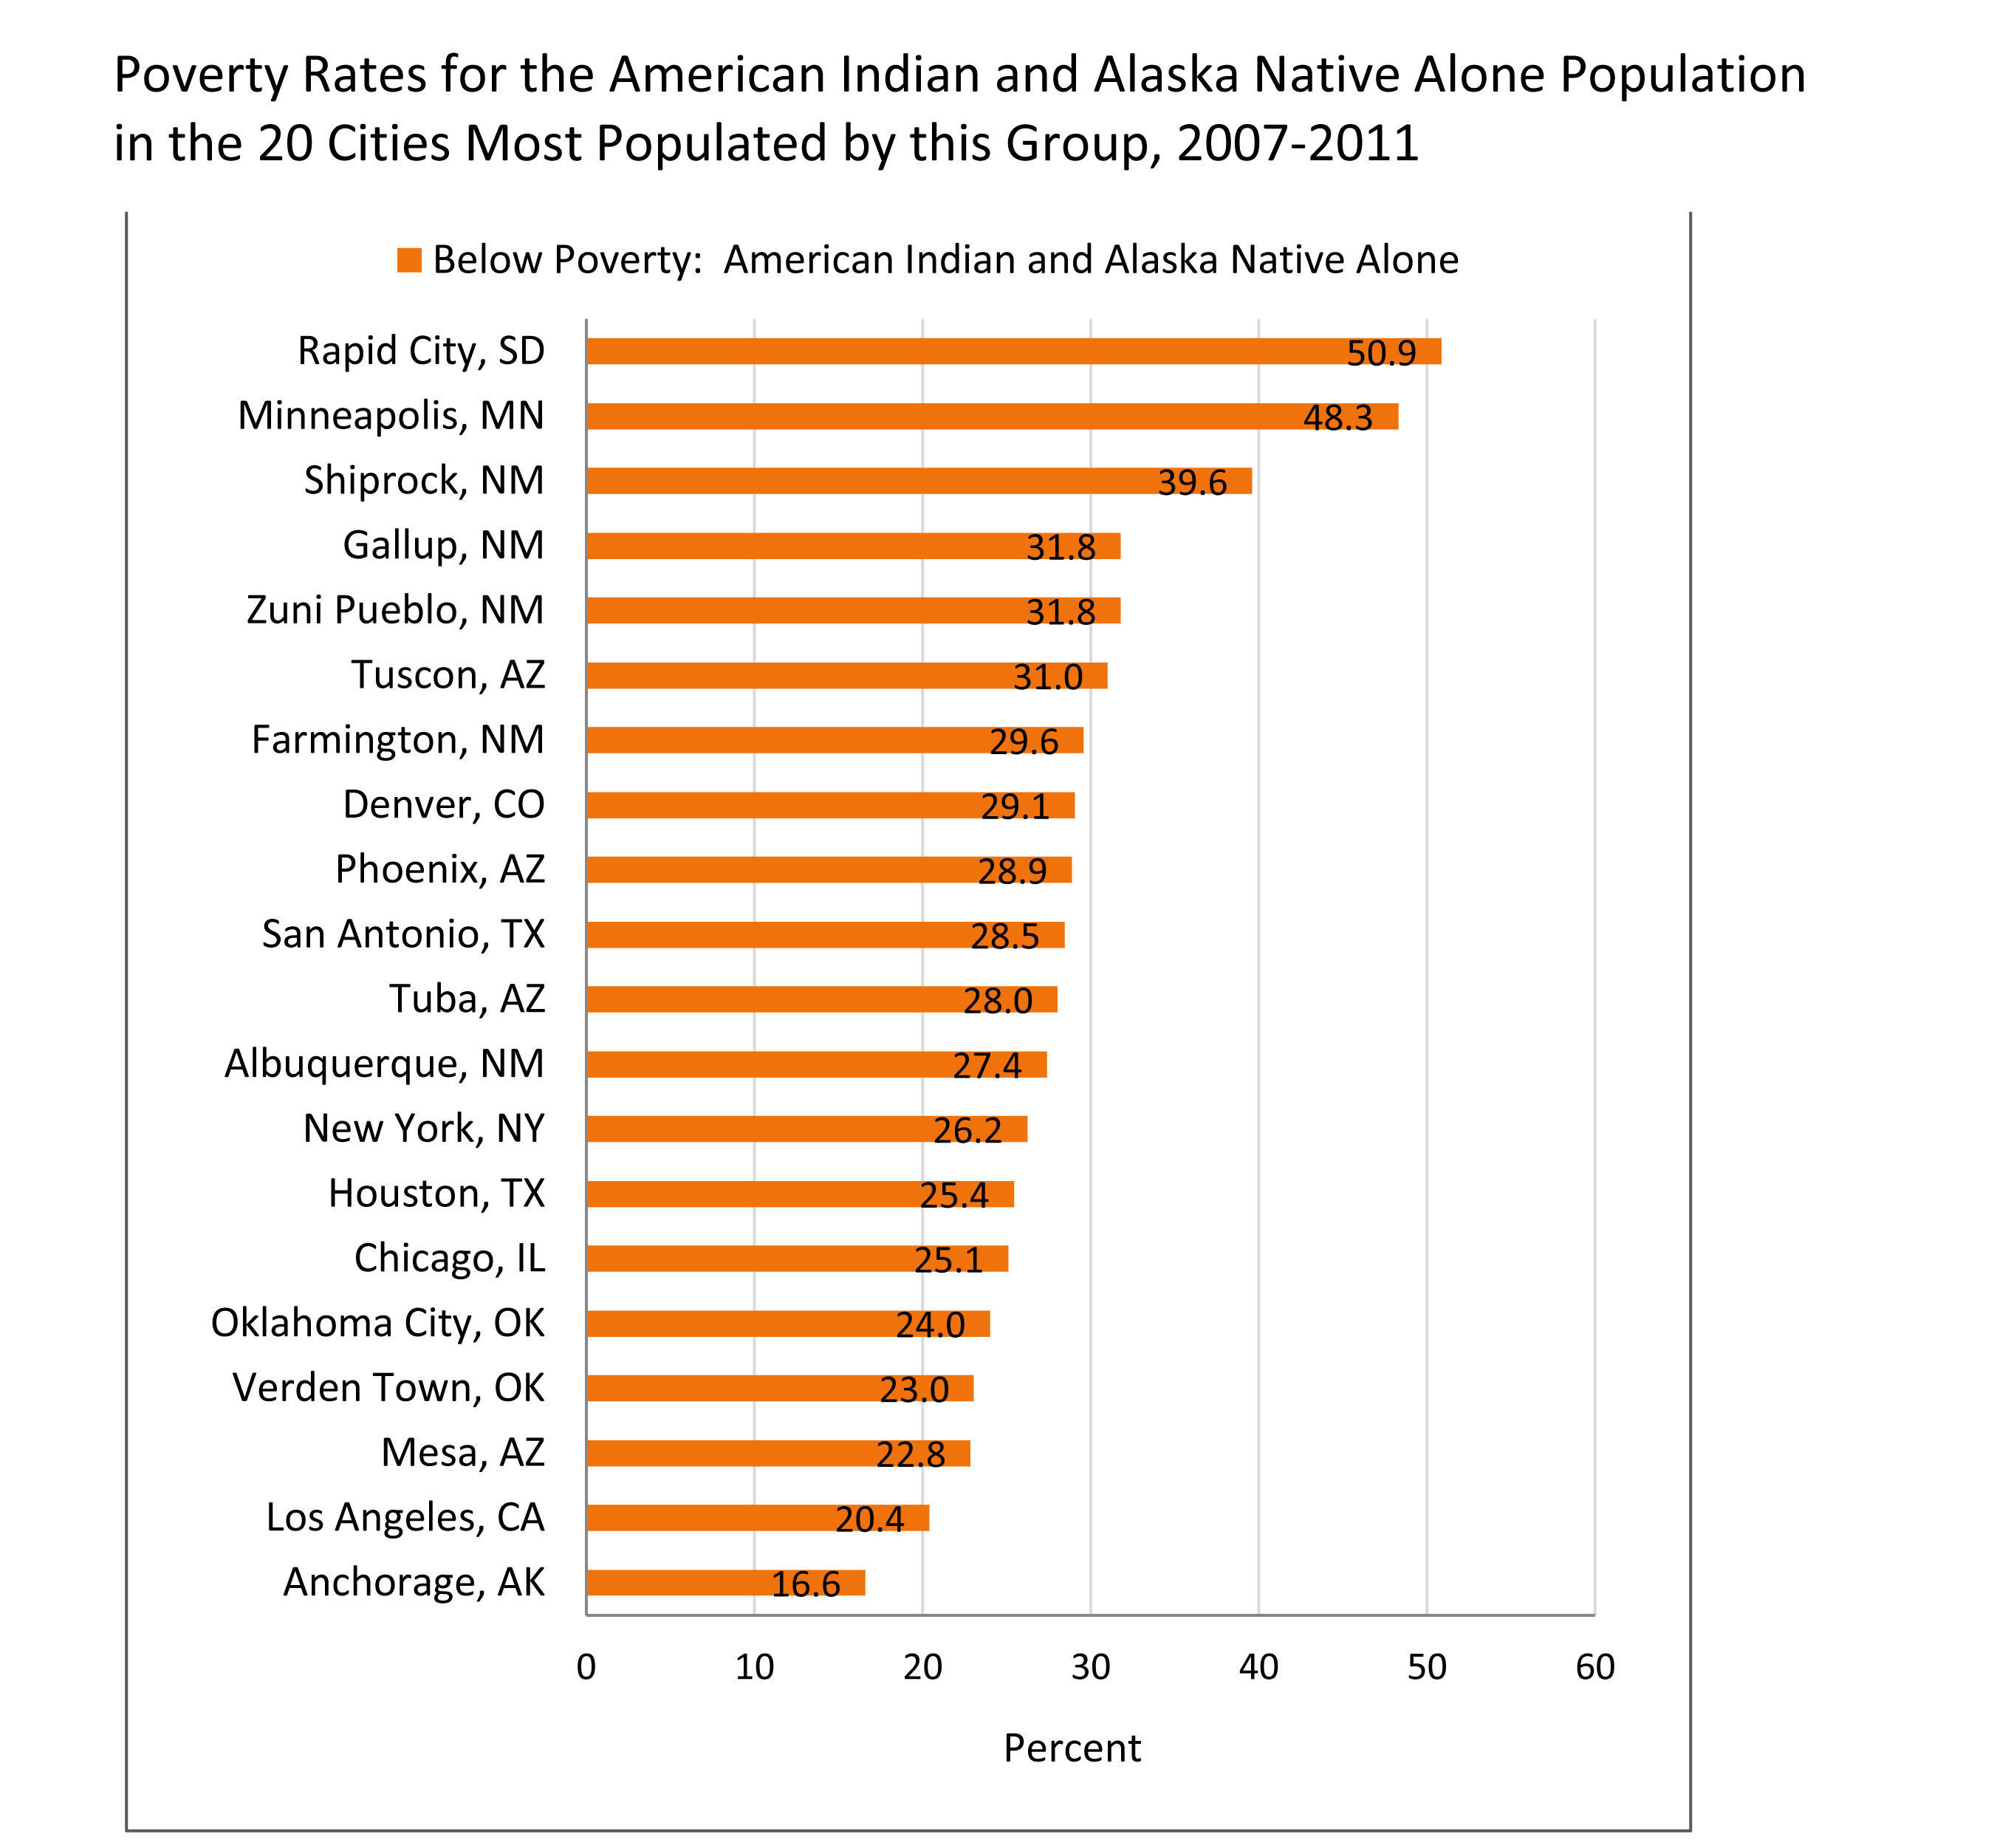 Census Bureau News: Poverty Rates for the American Indian and Alaska Native Alone Population in the 20 Cities Most Populated by This Group, 2007-2011 American Community Survey.  (PRNewsFoto/U.S. Census Bureau)